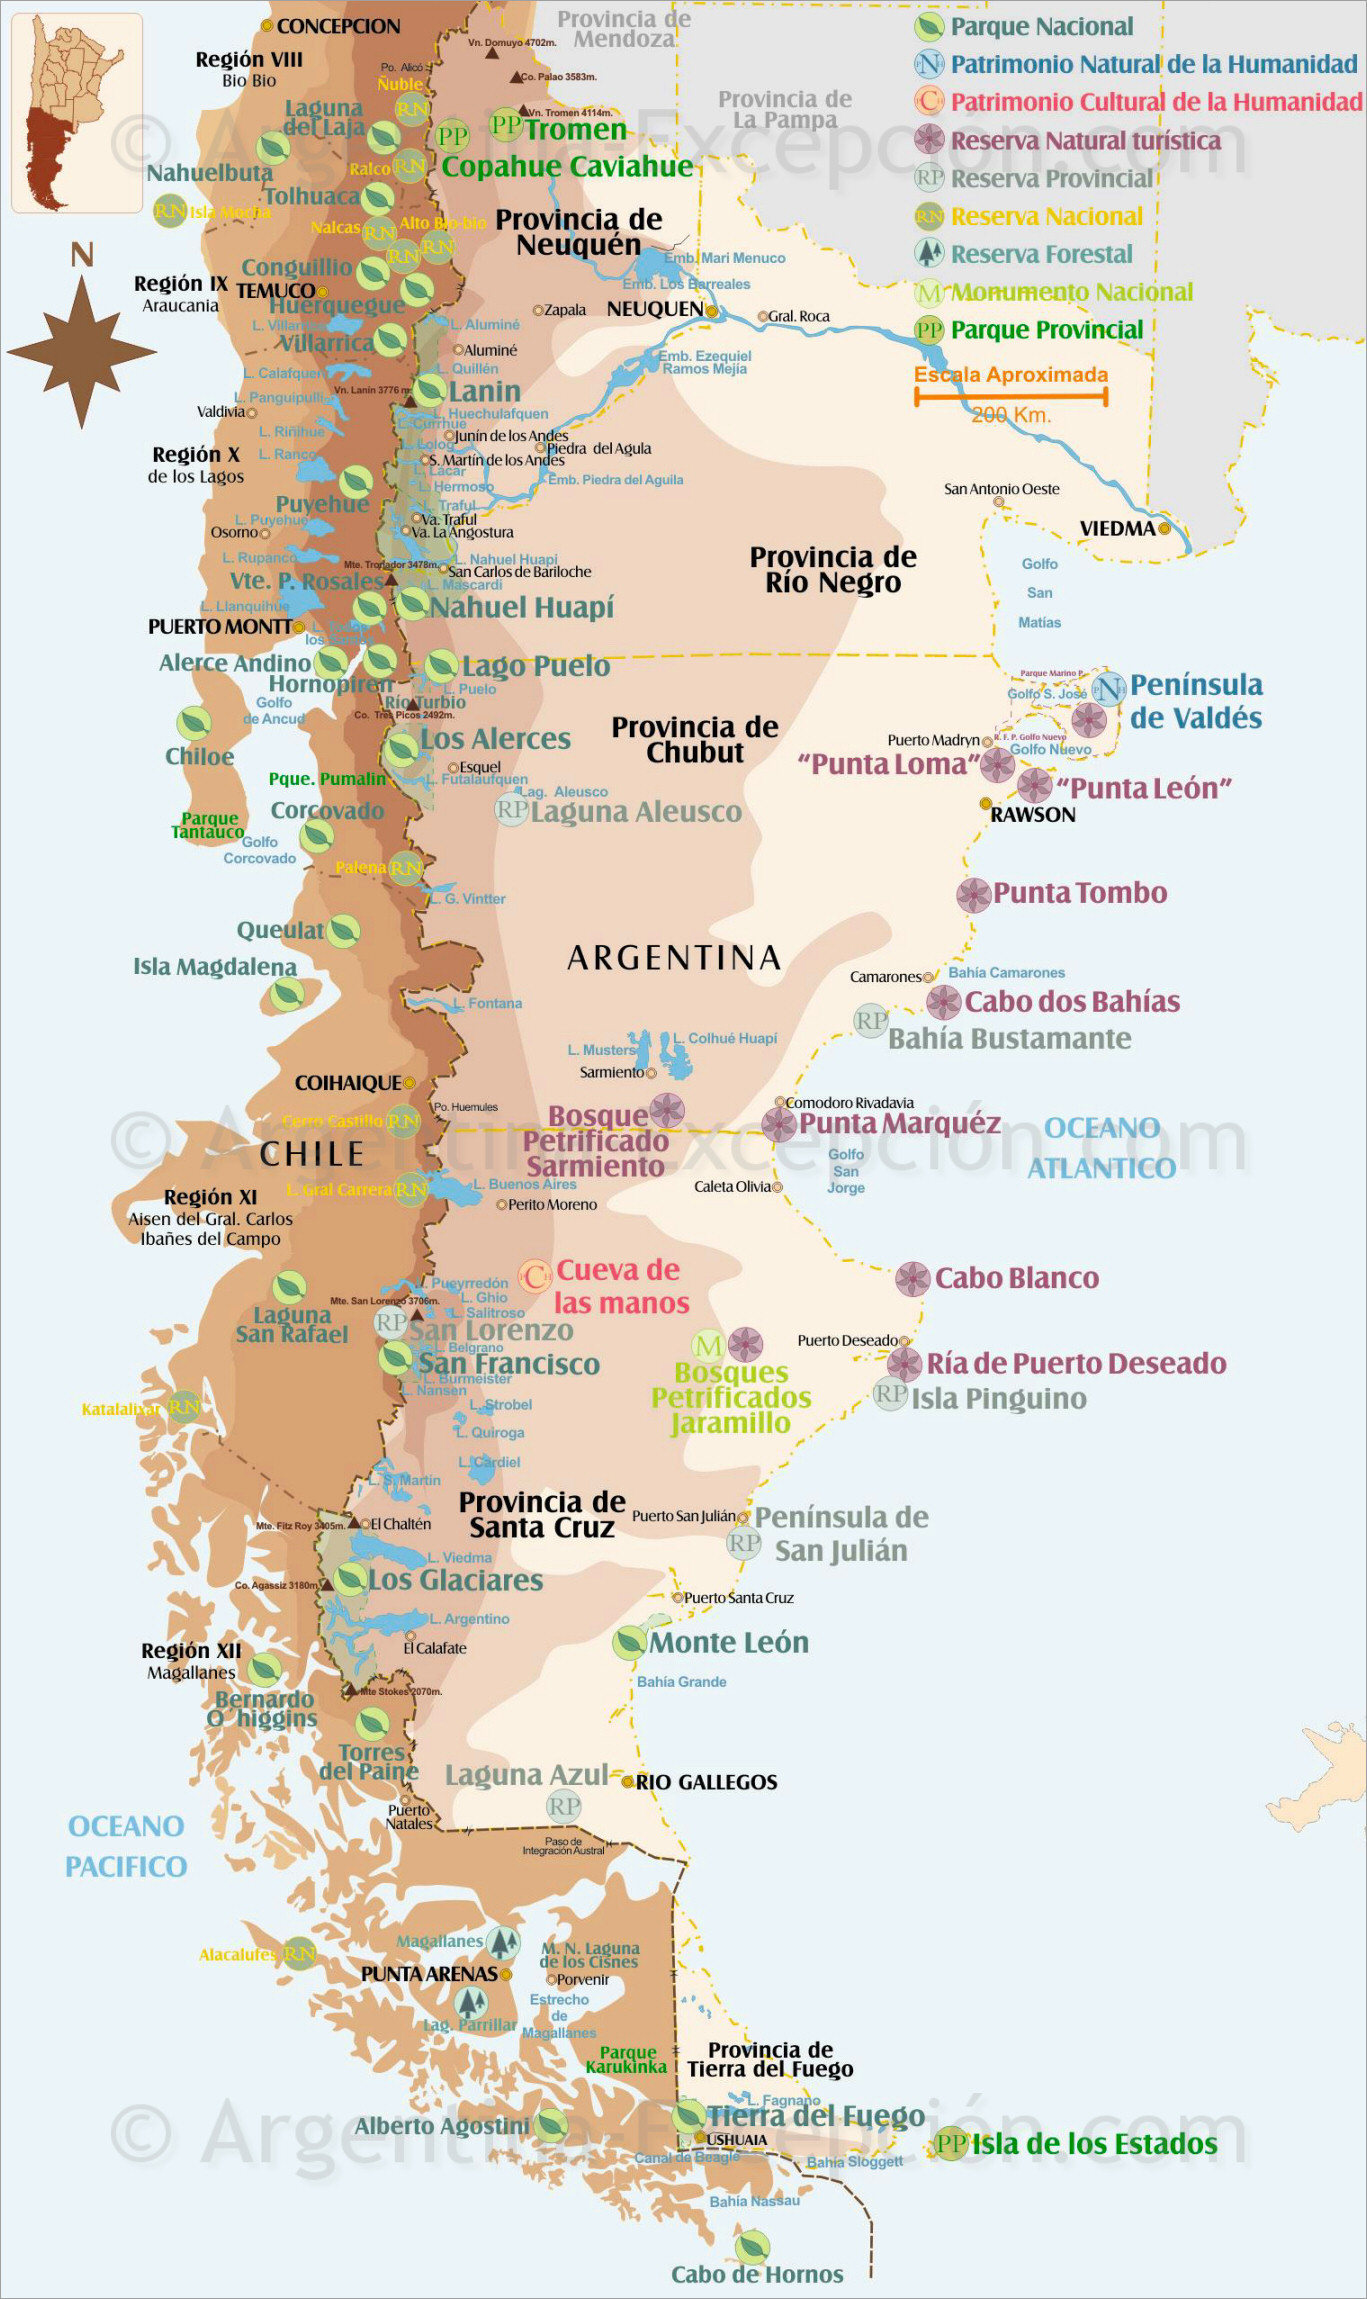 Map of Patagonia National Parks and Natural Reserves Map Of Argentina And Chile on map of copiapo chile, map of nuclear power plants in the world, map of patagonia chile, map chile argentina border, political map of chile, ecuador and chile, map of el cono sur, map of southern chile, map of patagonia region, map of peru, map of chile with cities, printable map of chile, political leader of chile, map show patagonia, detailed map of chile, street map of villarrica in chile, map of chile coast, people from chile, map of chile and hawaii, large map of chile,